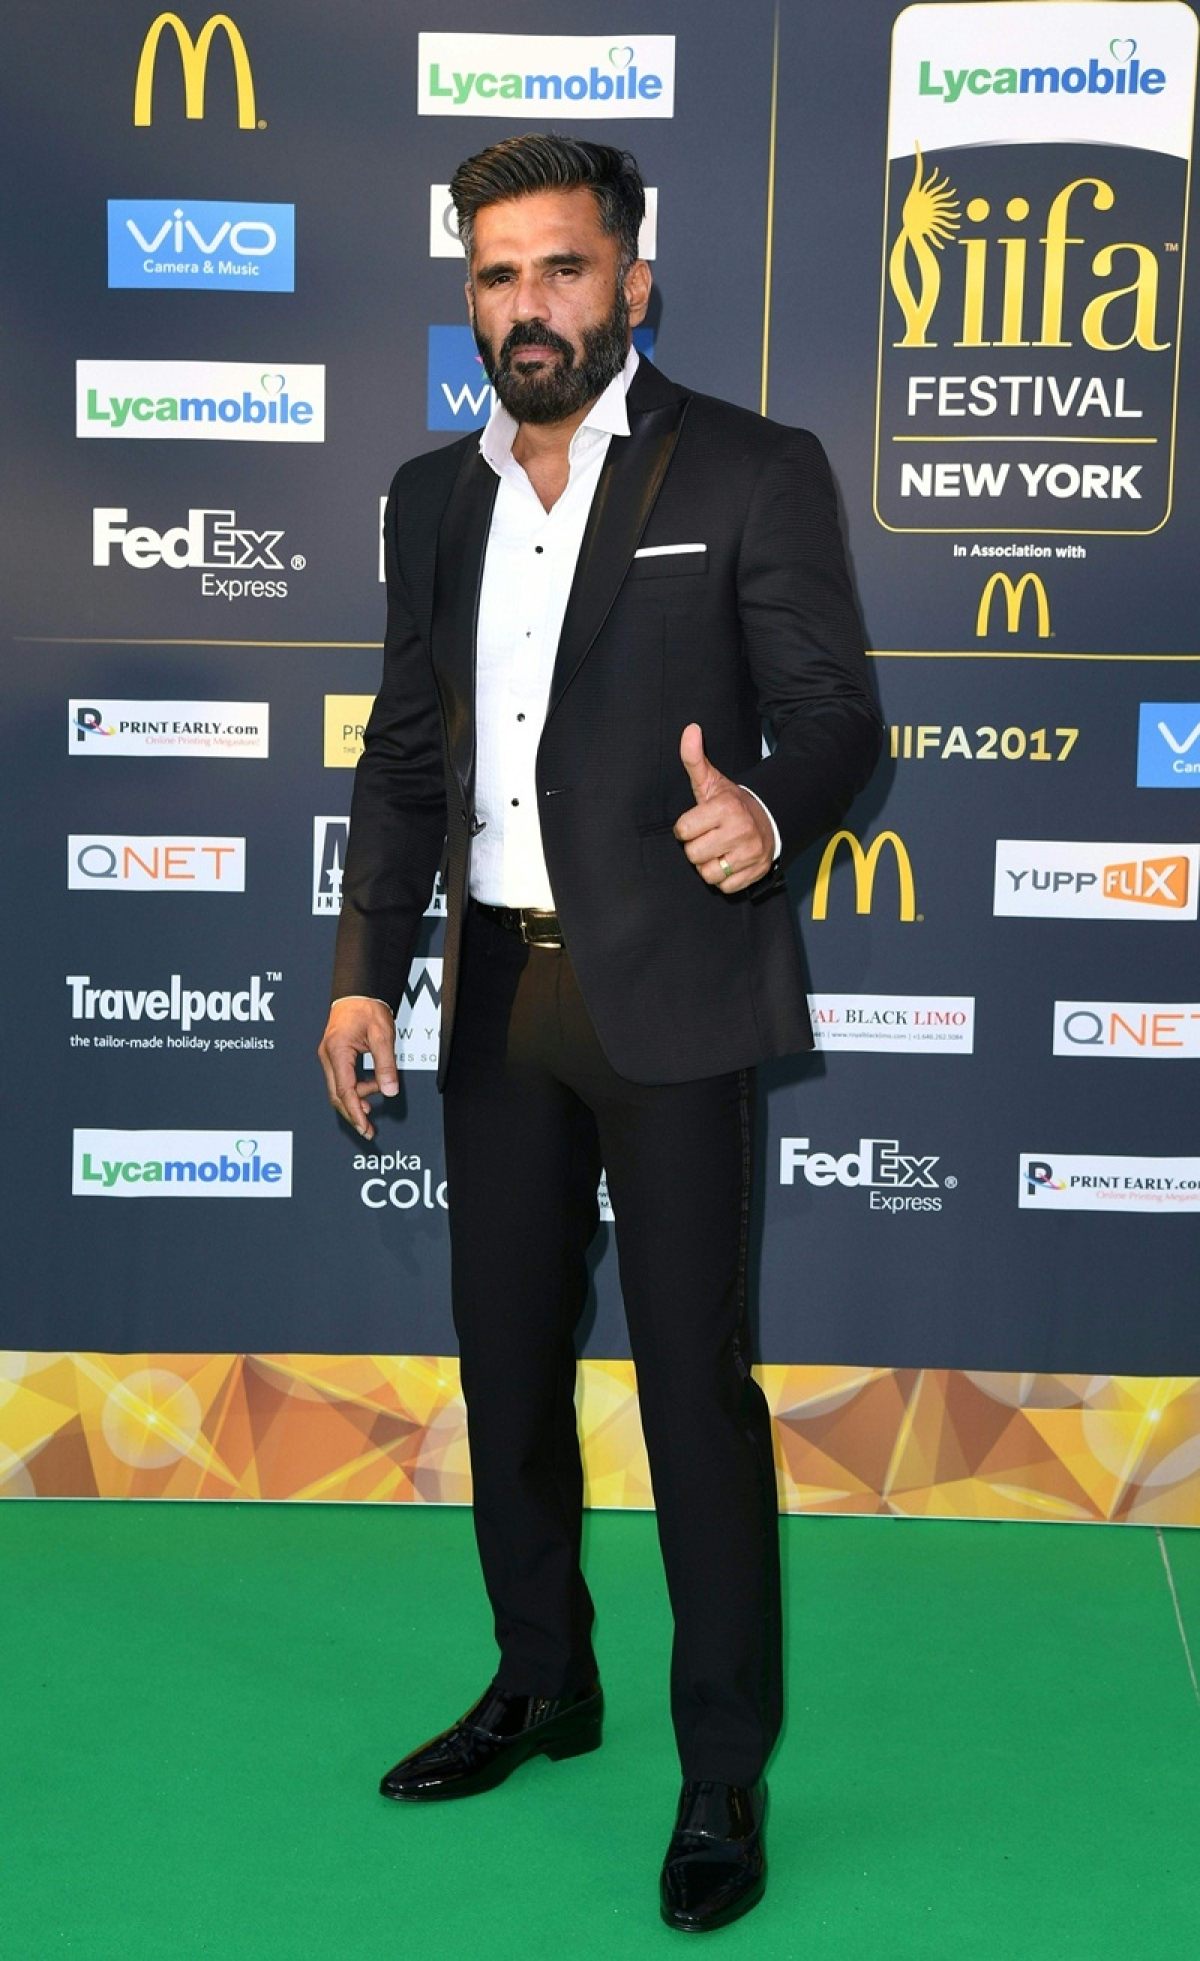 Bollywood Actor Sunil Shetty arrives for the IIFA Awards July 15, 2017 at the MetLife Stadium in East Rutherford, New Jersey during the 18th International Indian Film Academy (IIFA) Festival. / AFP PHOTO / ANGELA WEISS